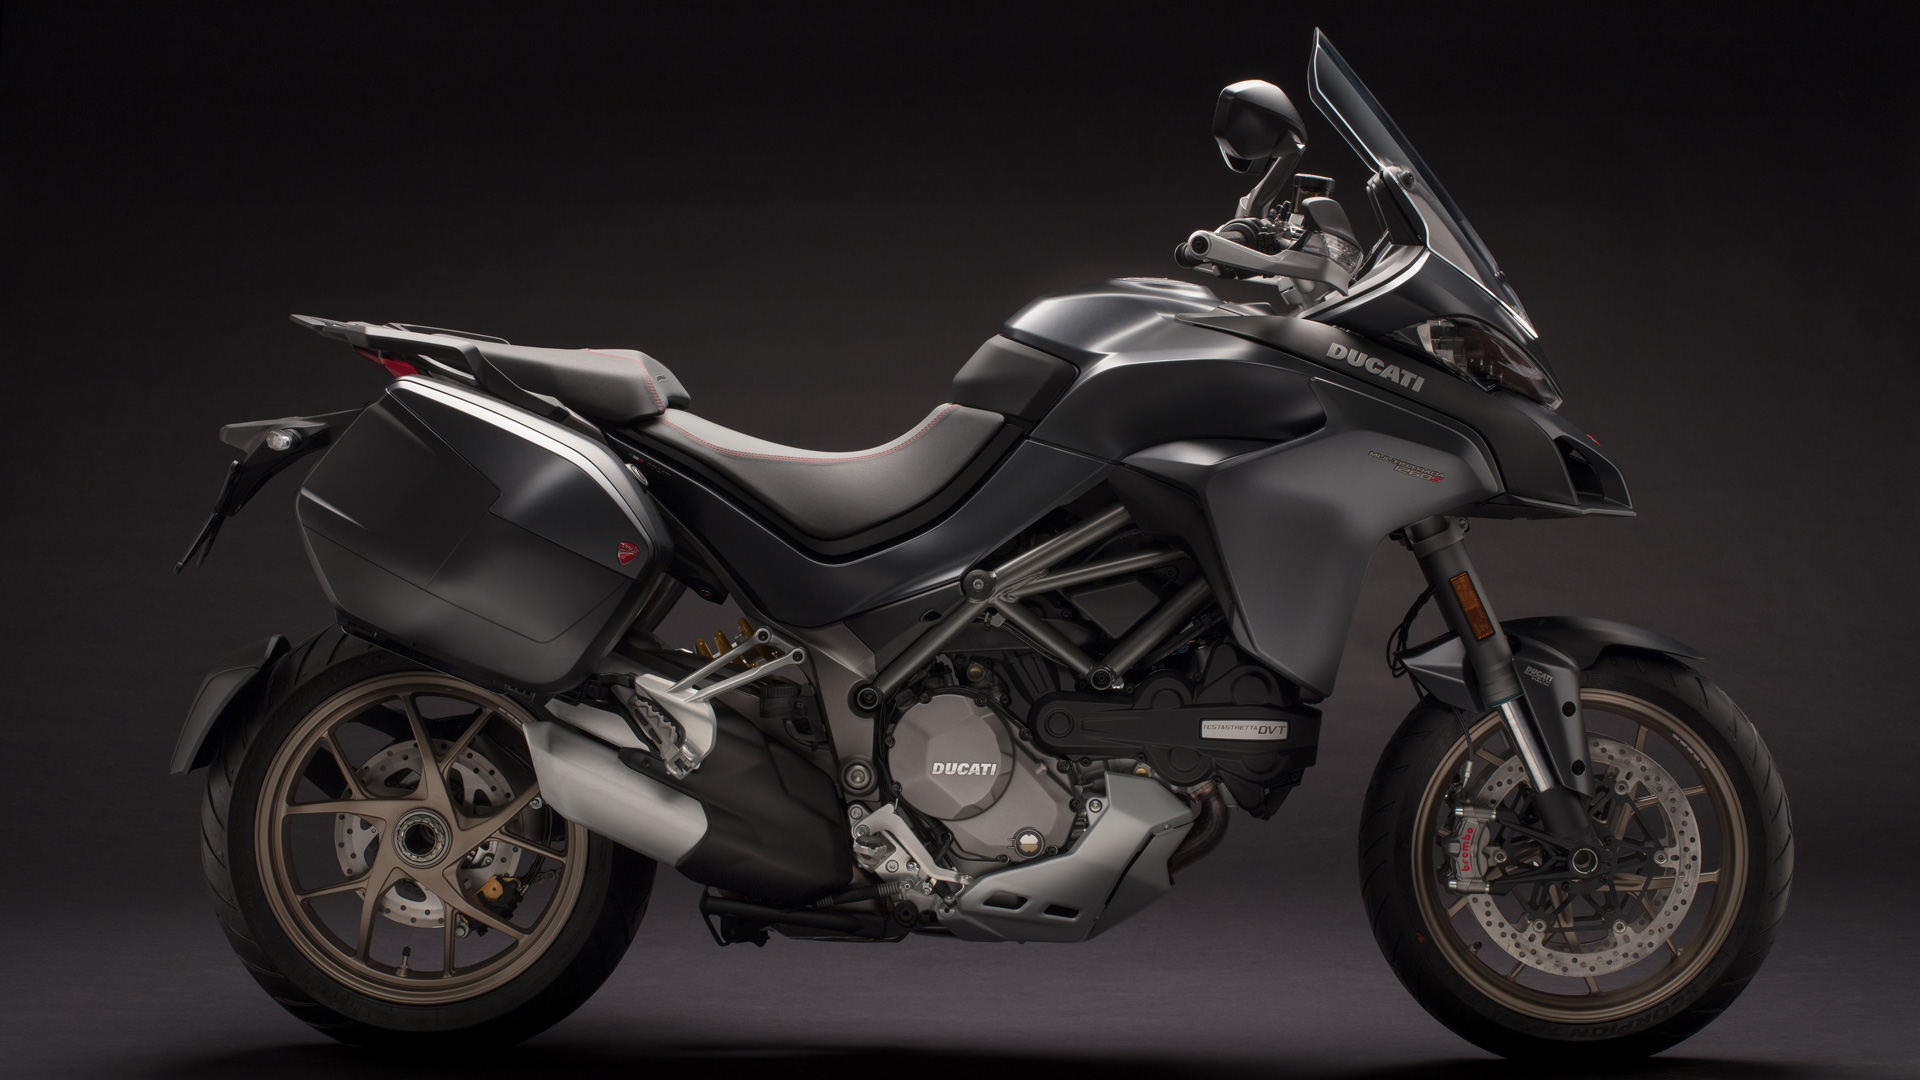 Swell Ducati Multistrada 1260 More Than A Bike Its A Multi Bike Caraccident5 Cool Chair Designs And Ideas Caraccident5Info